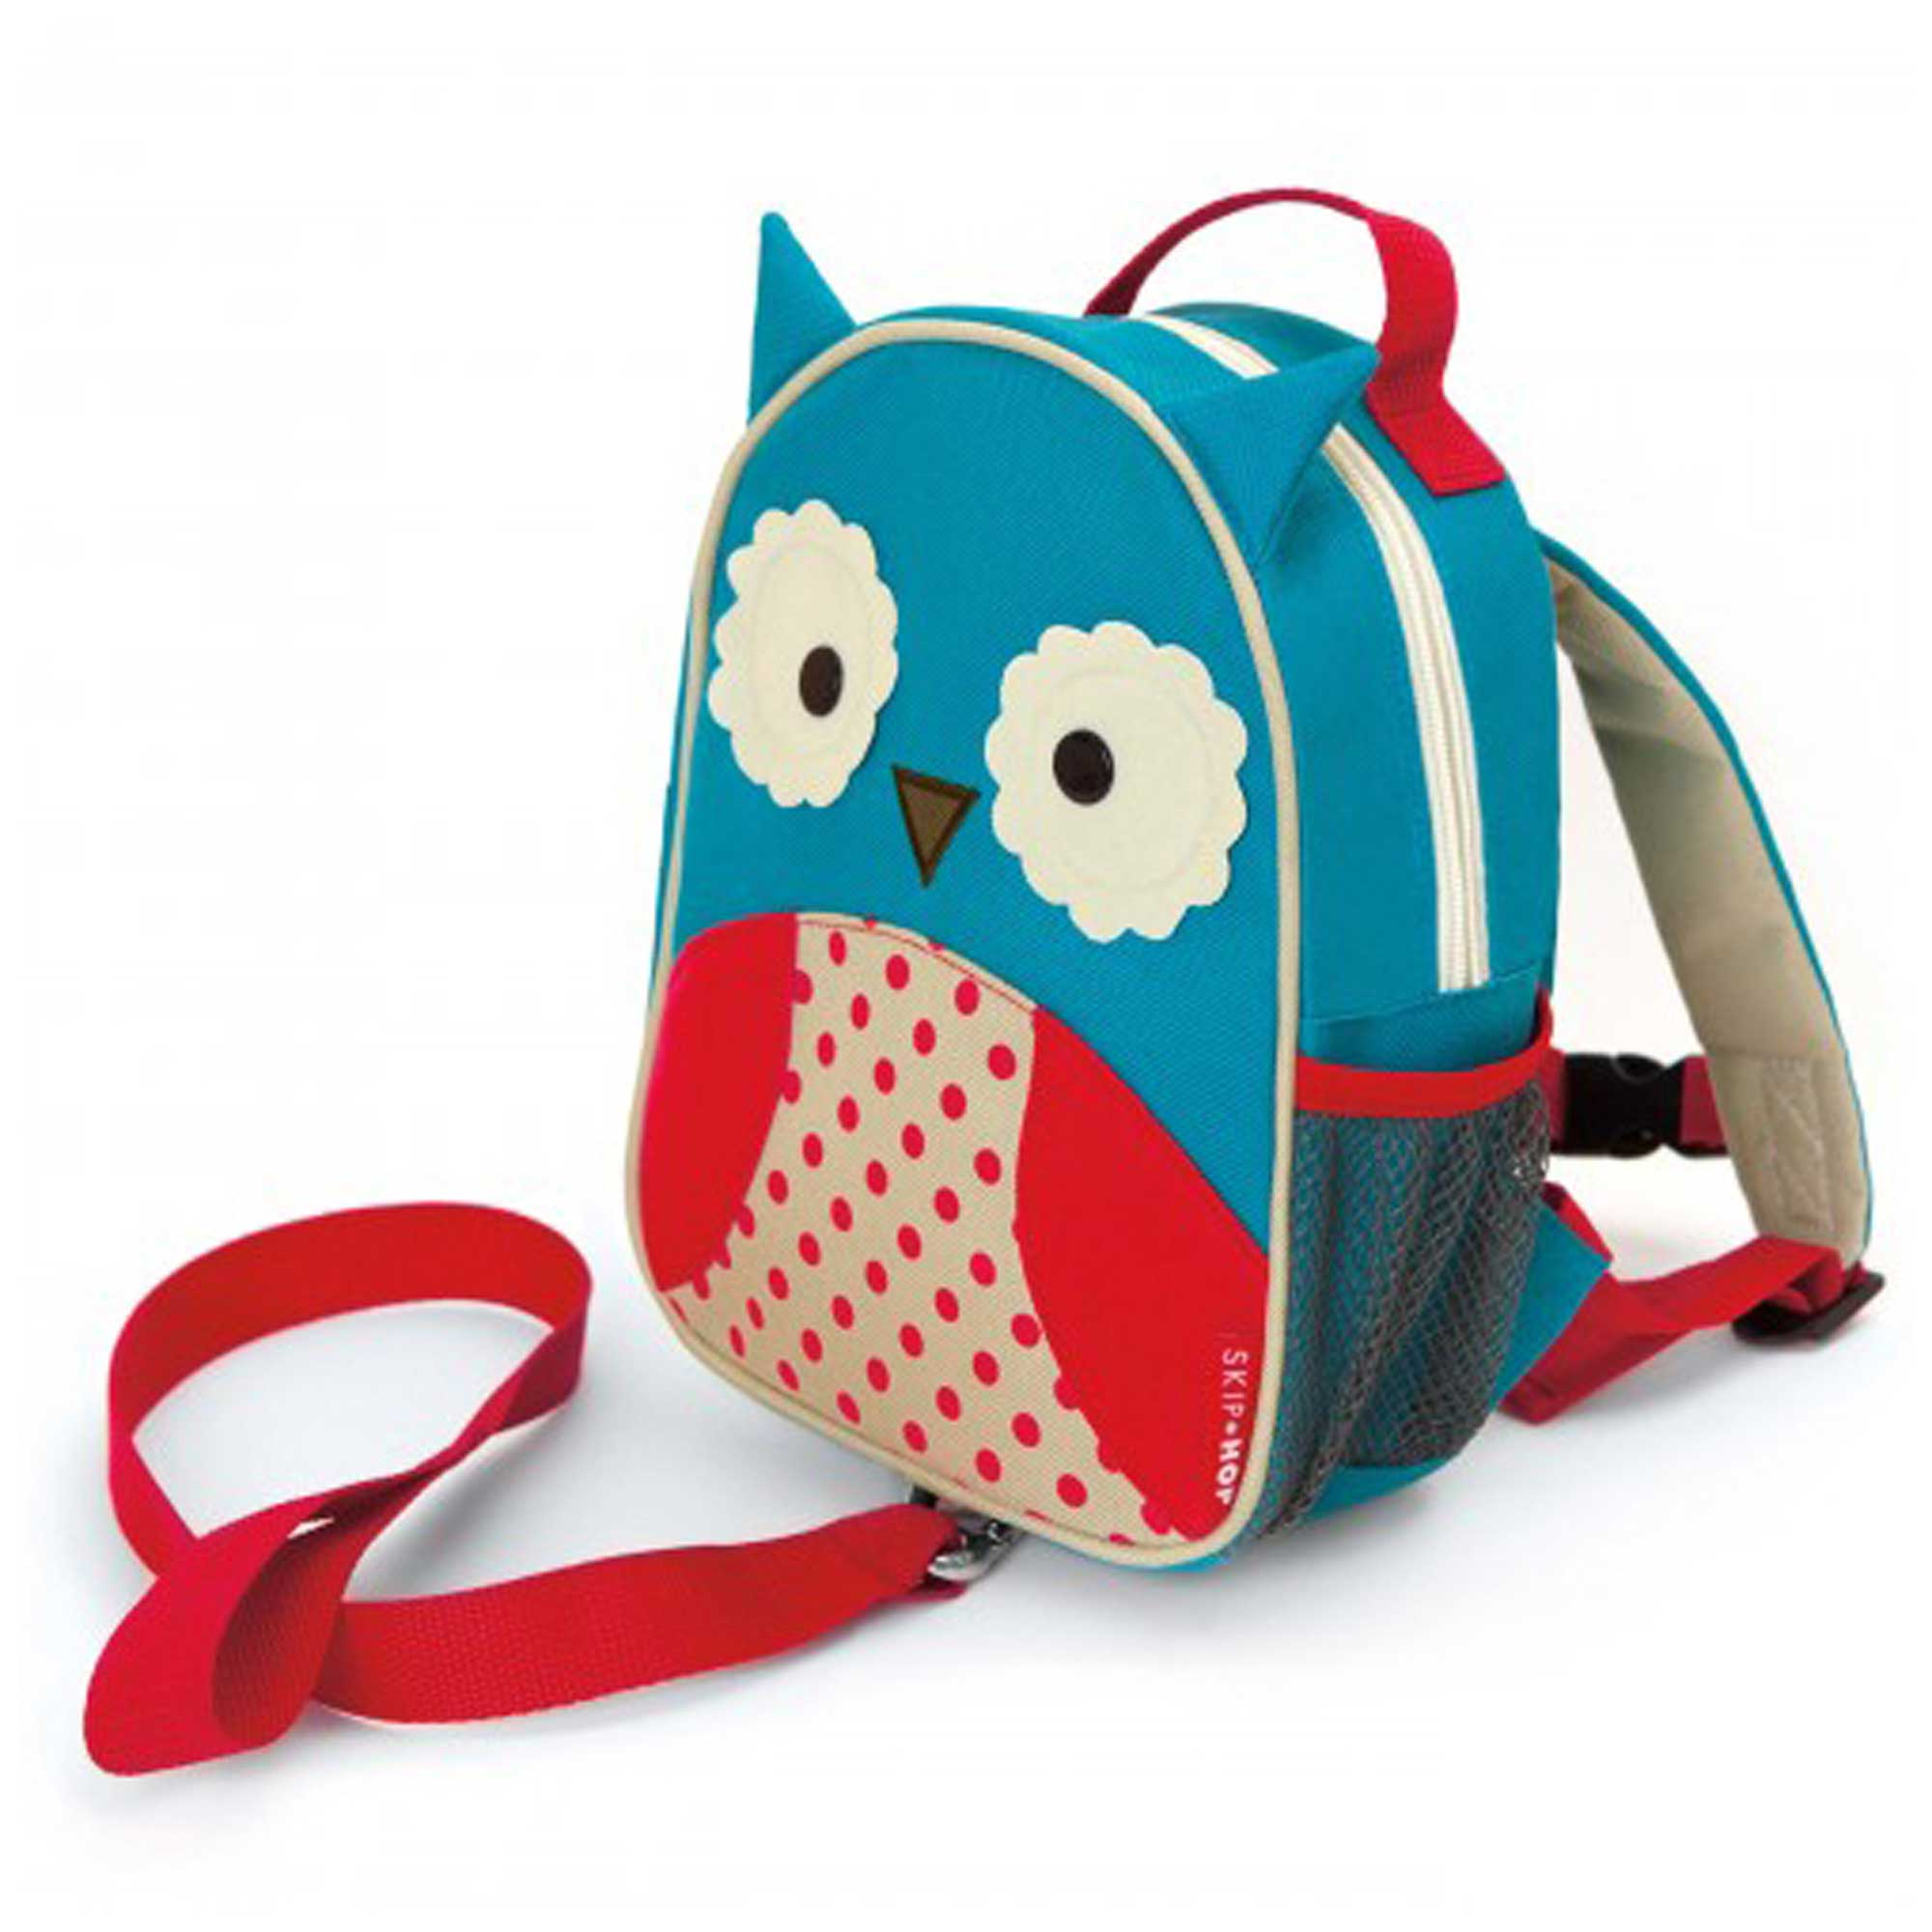 BUTTERFLY Kids Clothes Bags BNIP Skip Hop ZOOLET MINI BACKPACK WITH REINS